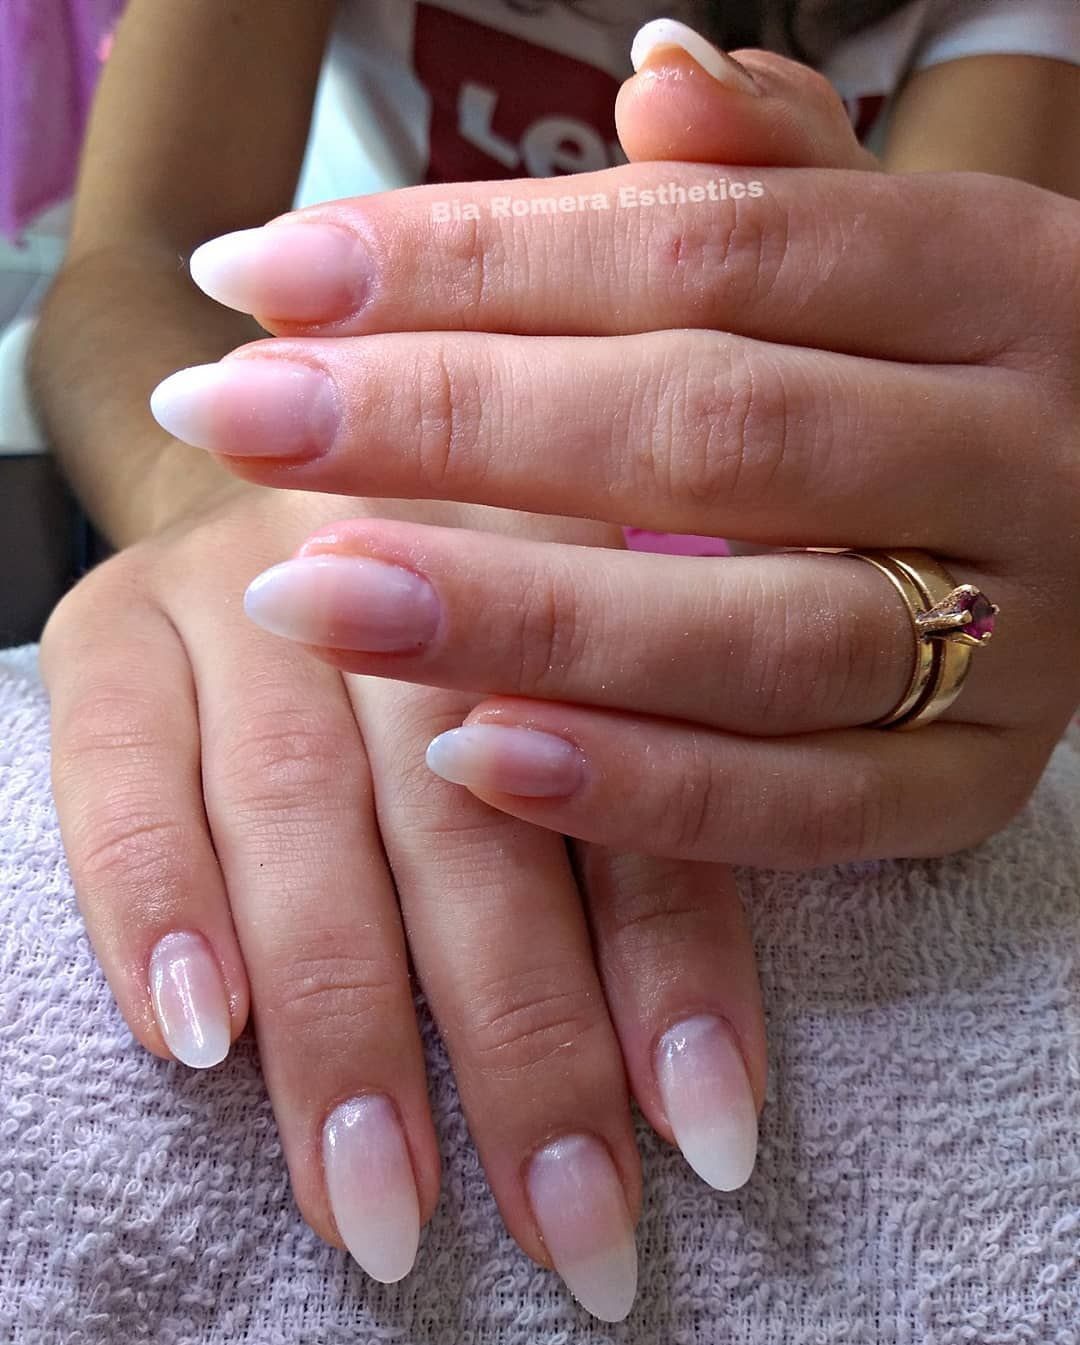 Latest Nail Trends For Fall Winter 2020 Nail Art Design Ideas